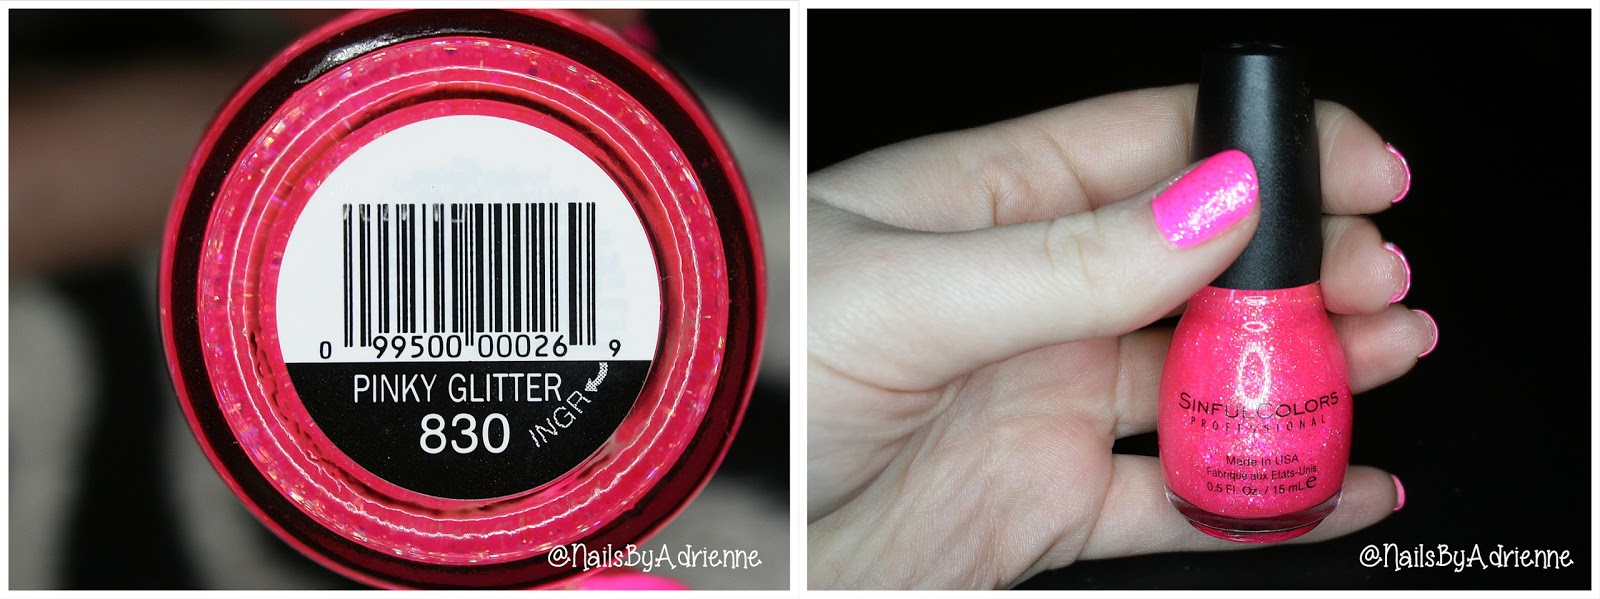 Nails By Adrienne Nail Polish Review Sinful Colors Pinky Glitter